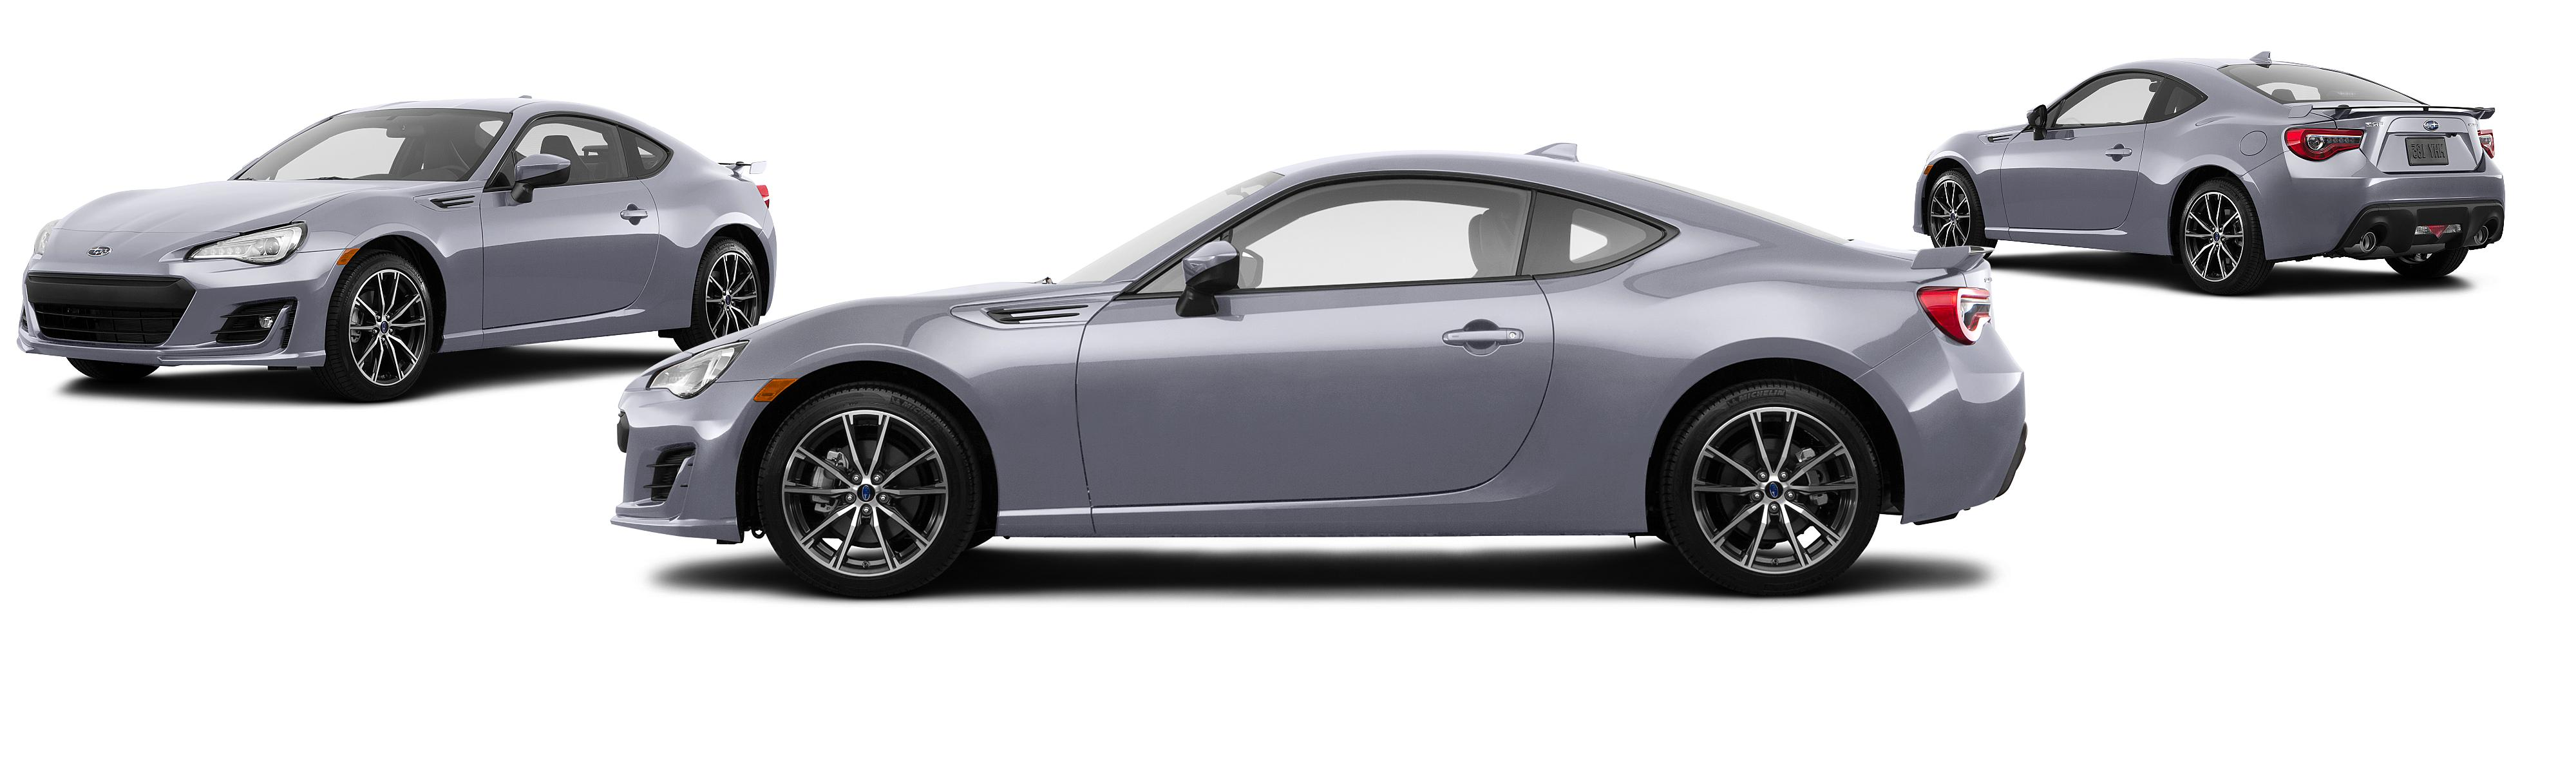 subaru brz white black rims 2013 subaru brz xt line. Black Bedroom Furniture Sets. Home Design Ideas